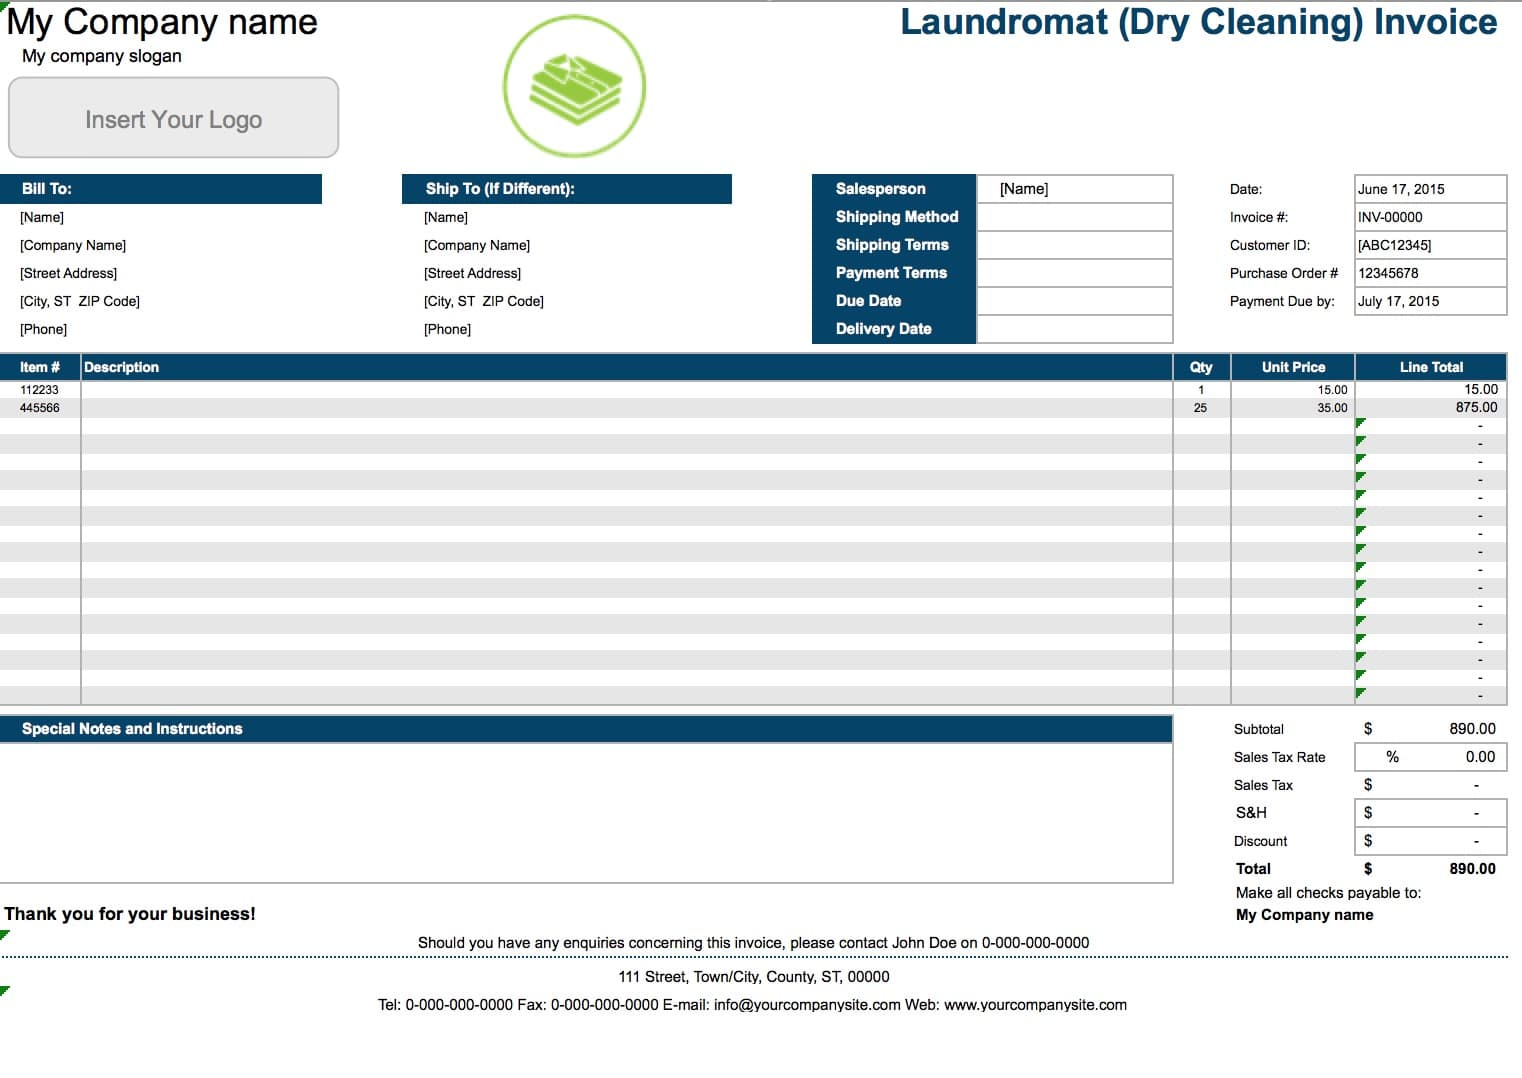 Free Laundromat Dry Cleaning Invoice Template Excel PDF Word - Sales invoice template excel best online dress stores